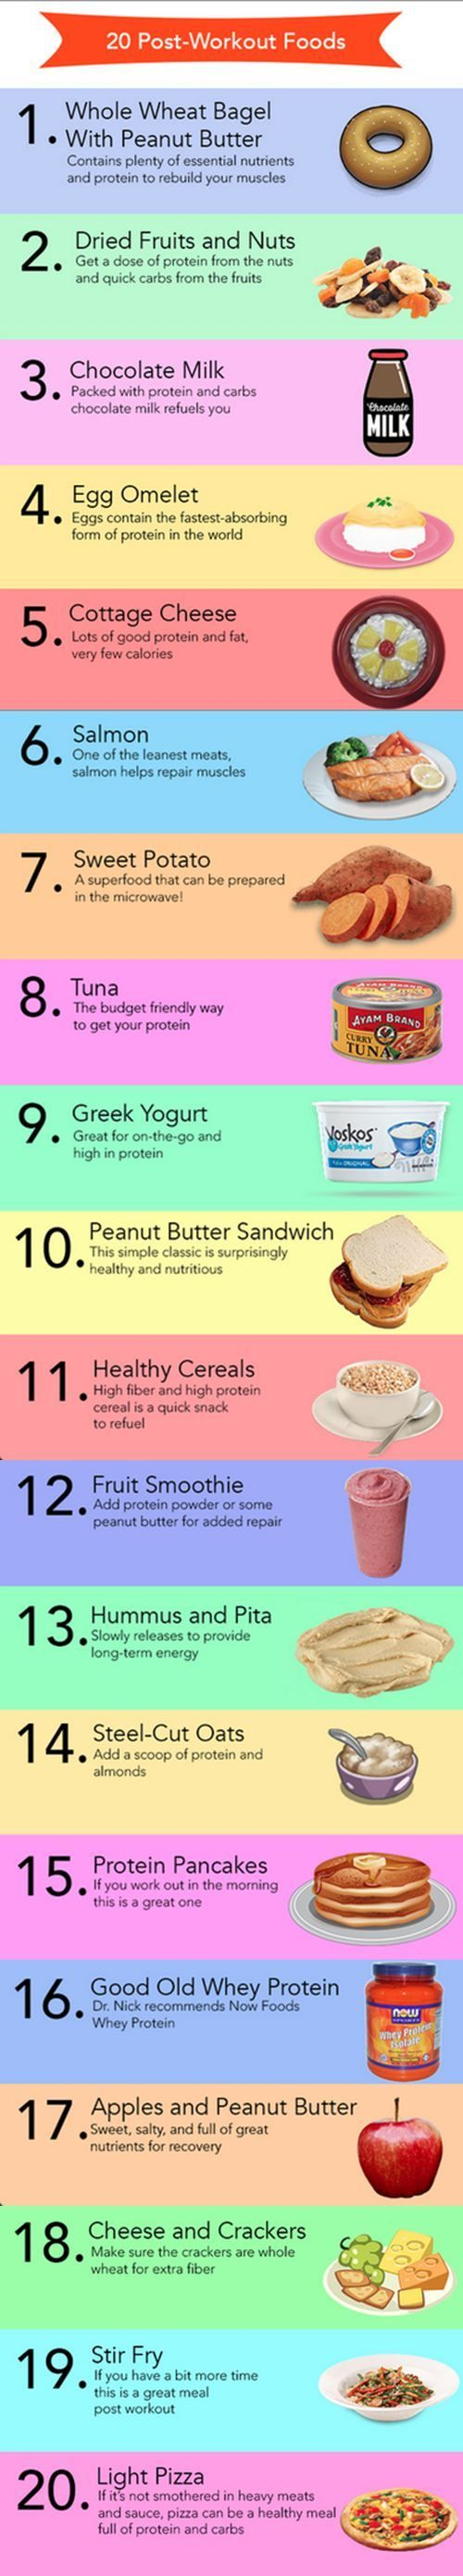 I can't agree completely on the Post workout  snacks some on this list aren't the best but for when I have cravings and on a diet.  These are good substitutes with moderation of course.